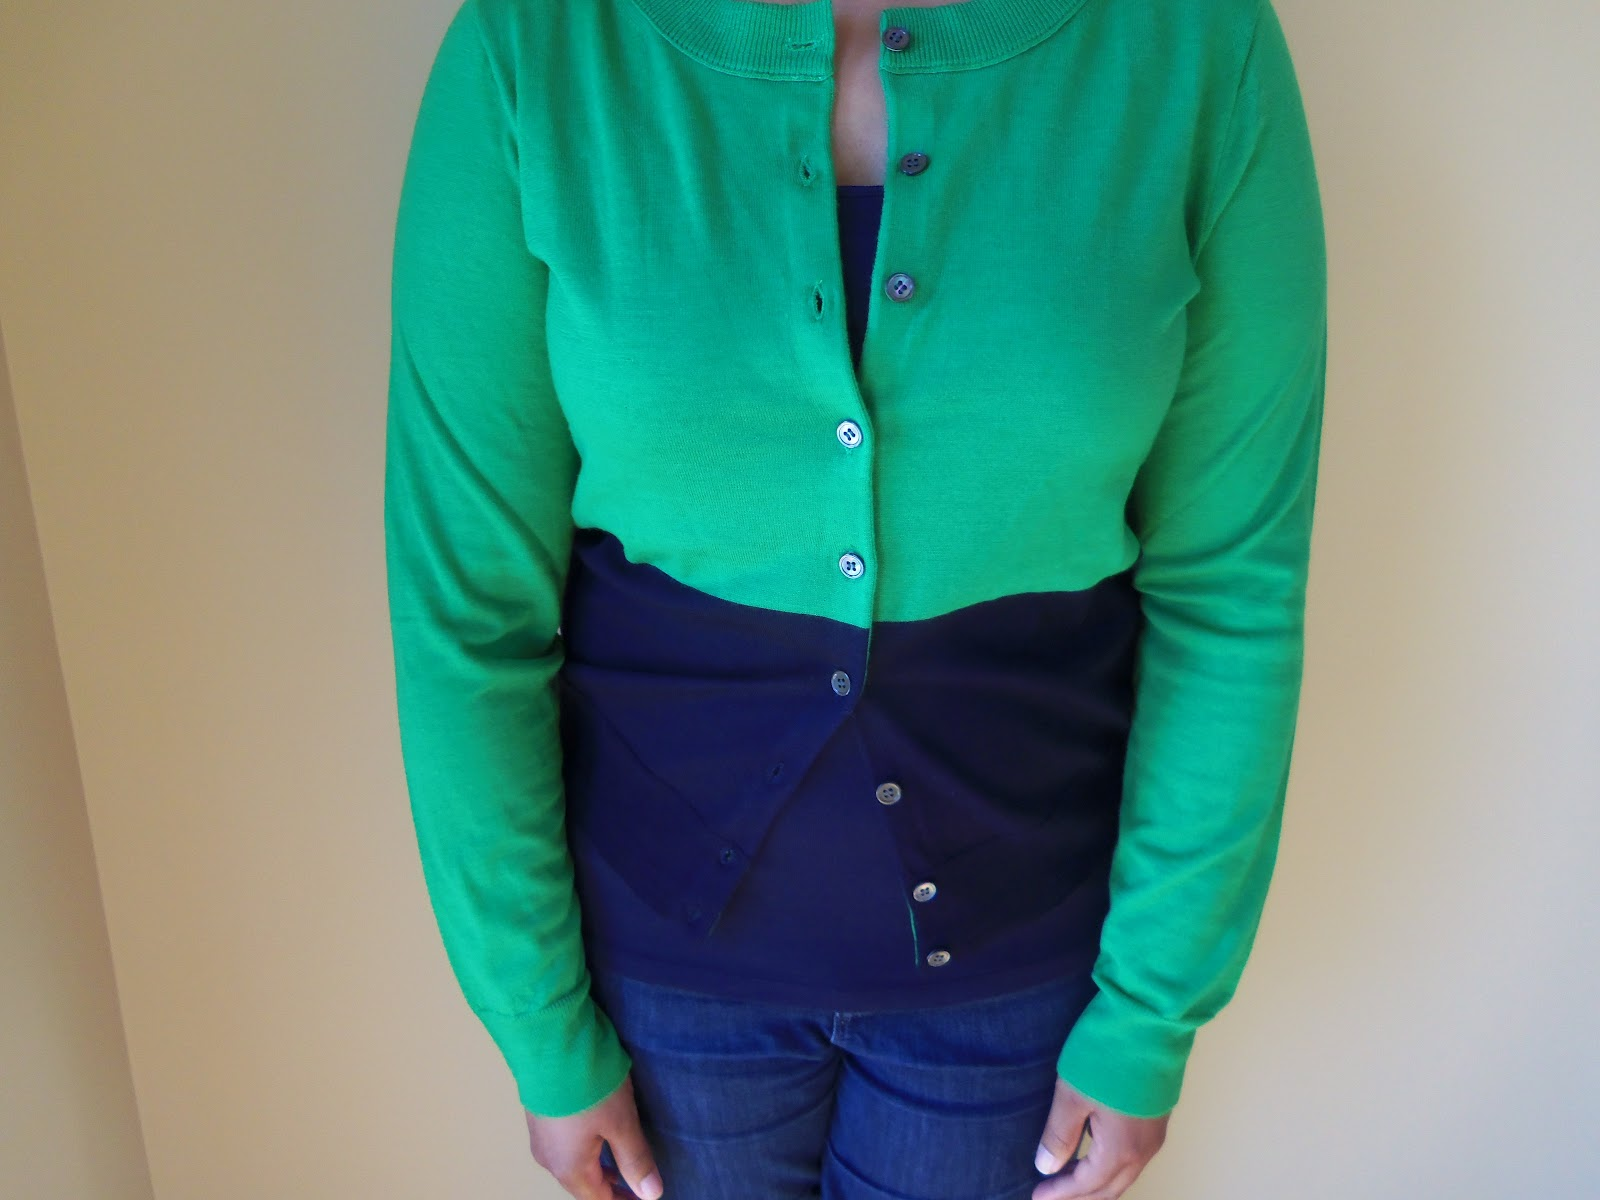 jcrewismyfavstore: J. Crew Tippi Cardigan and a Sweet Old Navy Find!